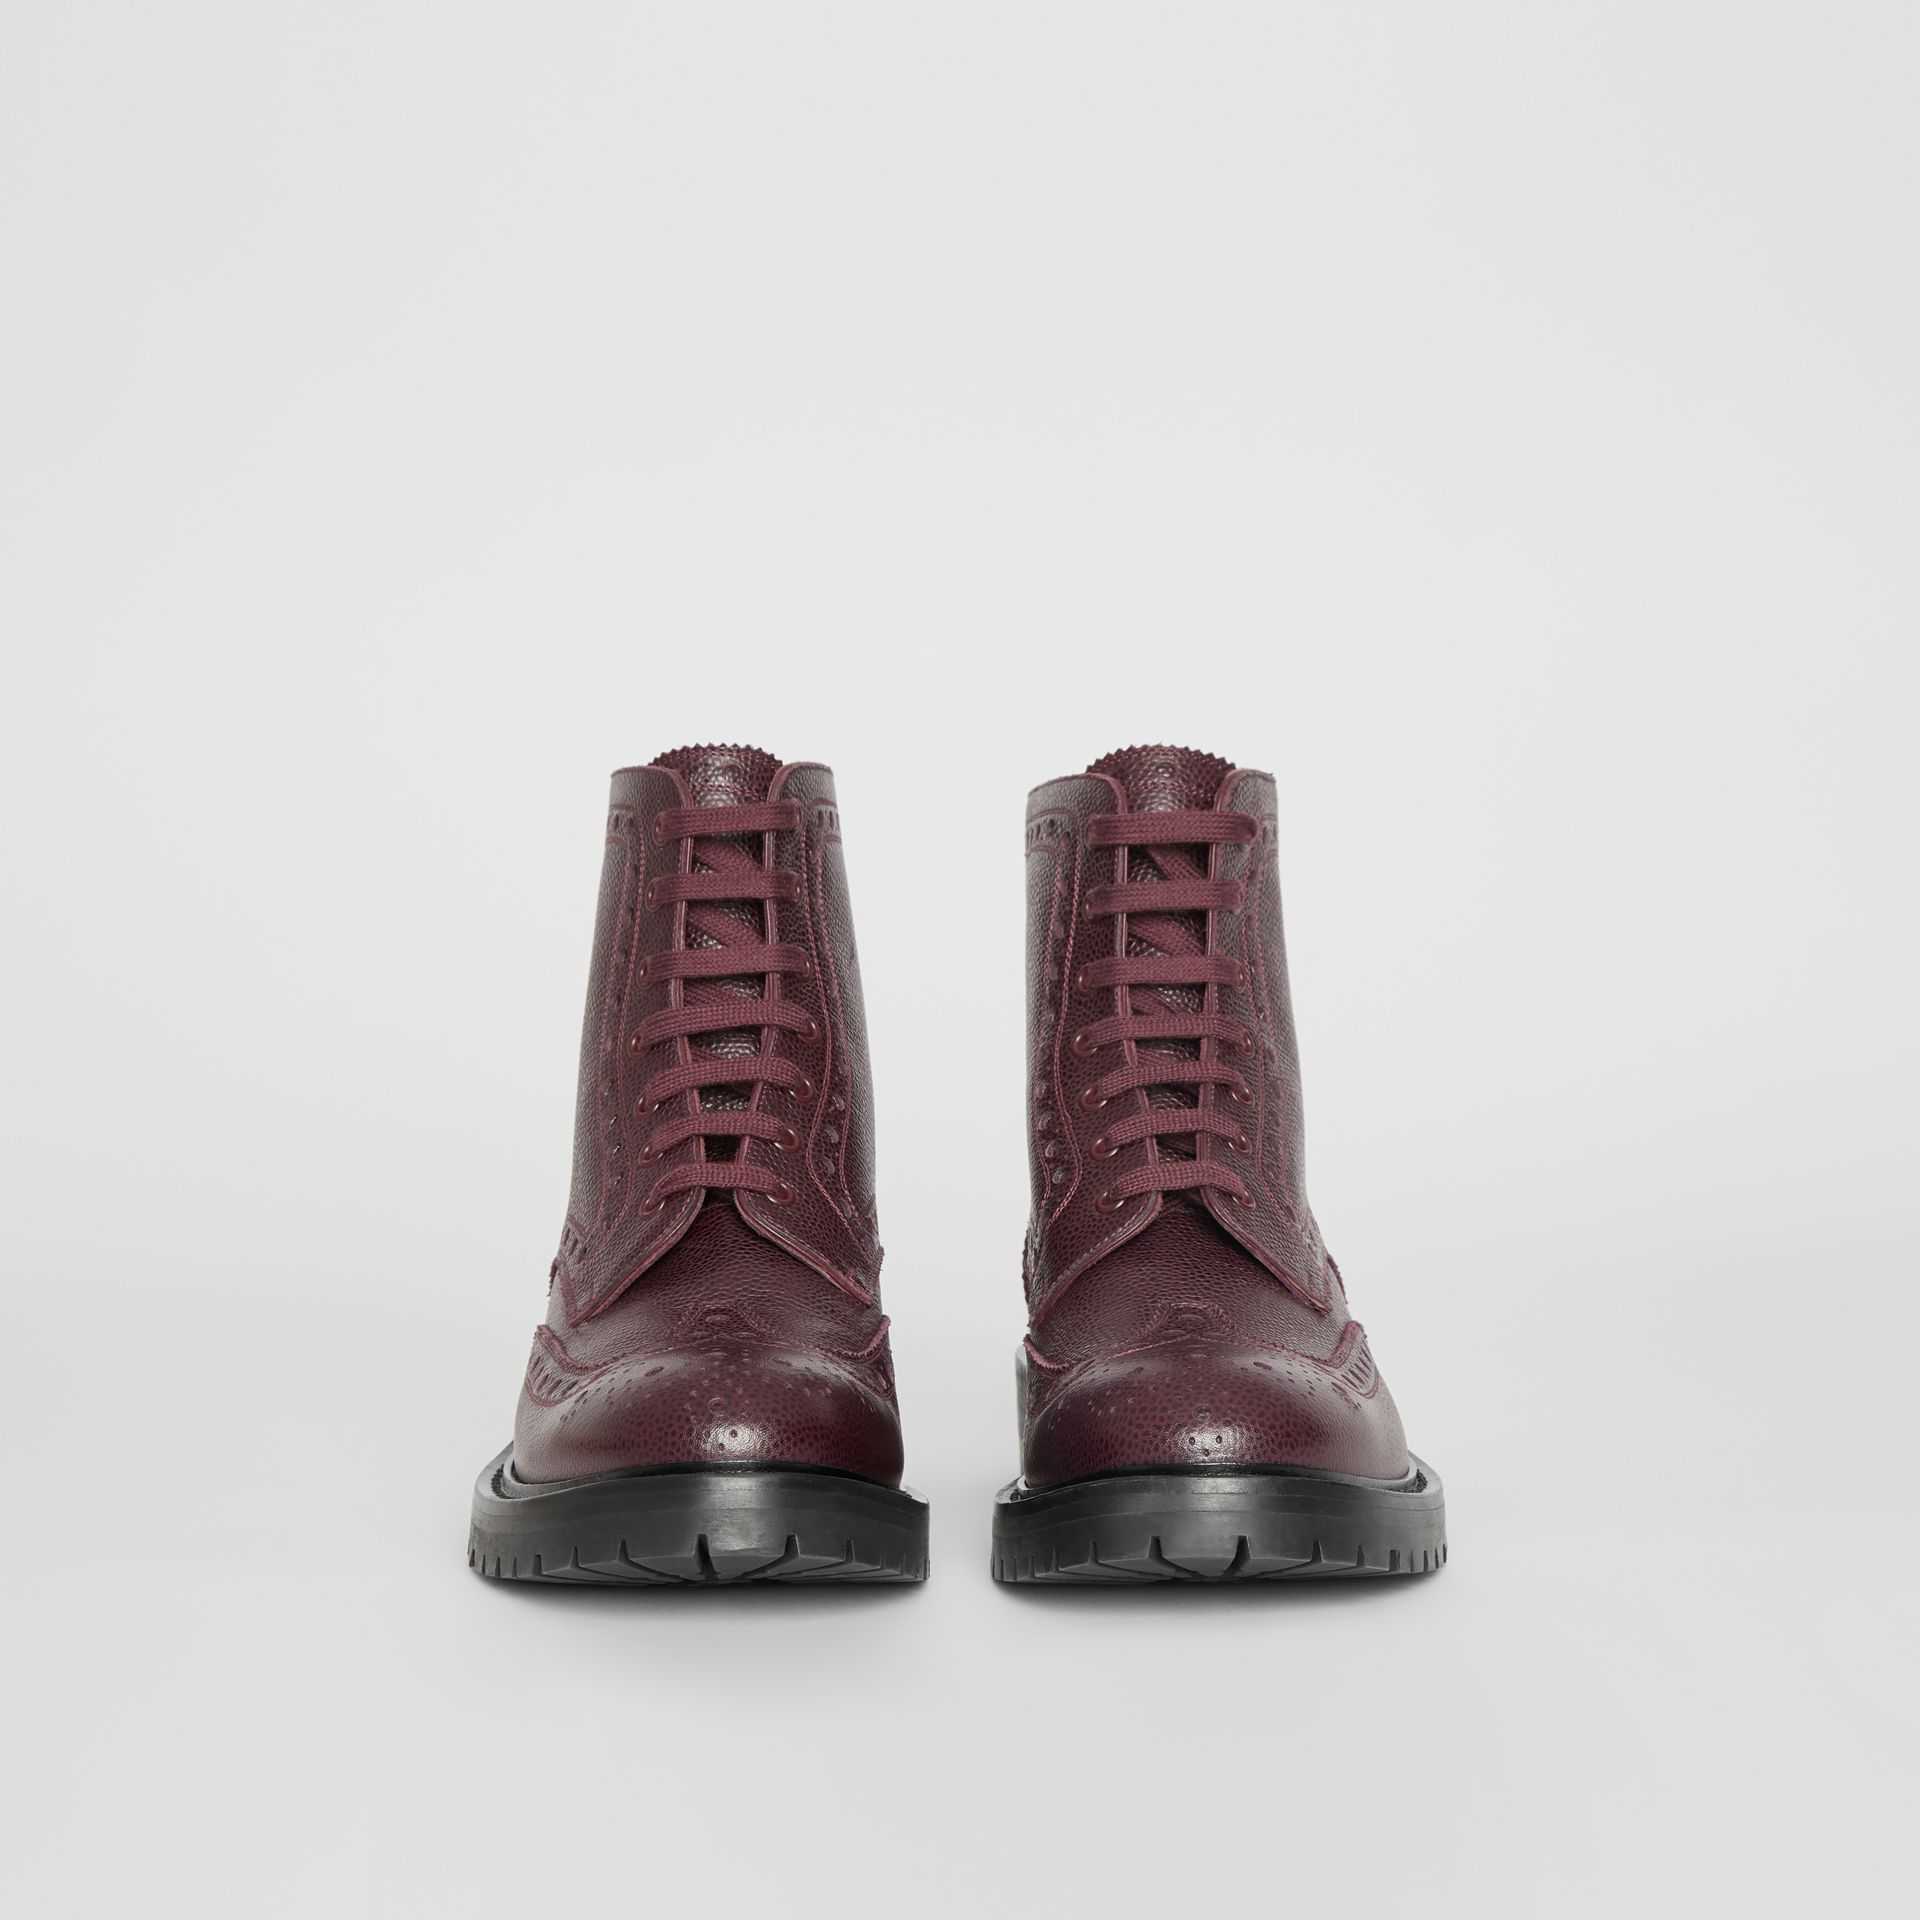 Brogue Detail Grainy Leather Boots in Bordeaux - Men | Burberry United States - gallery image 3